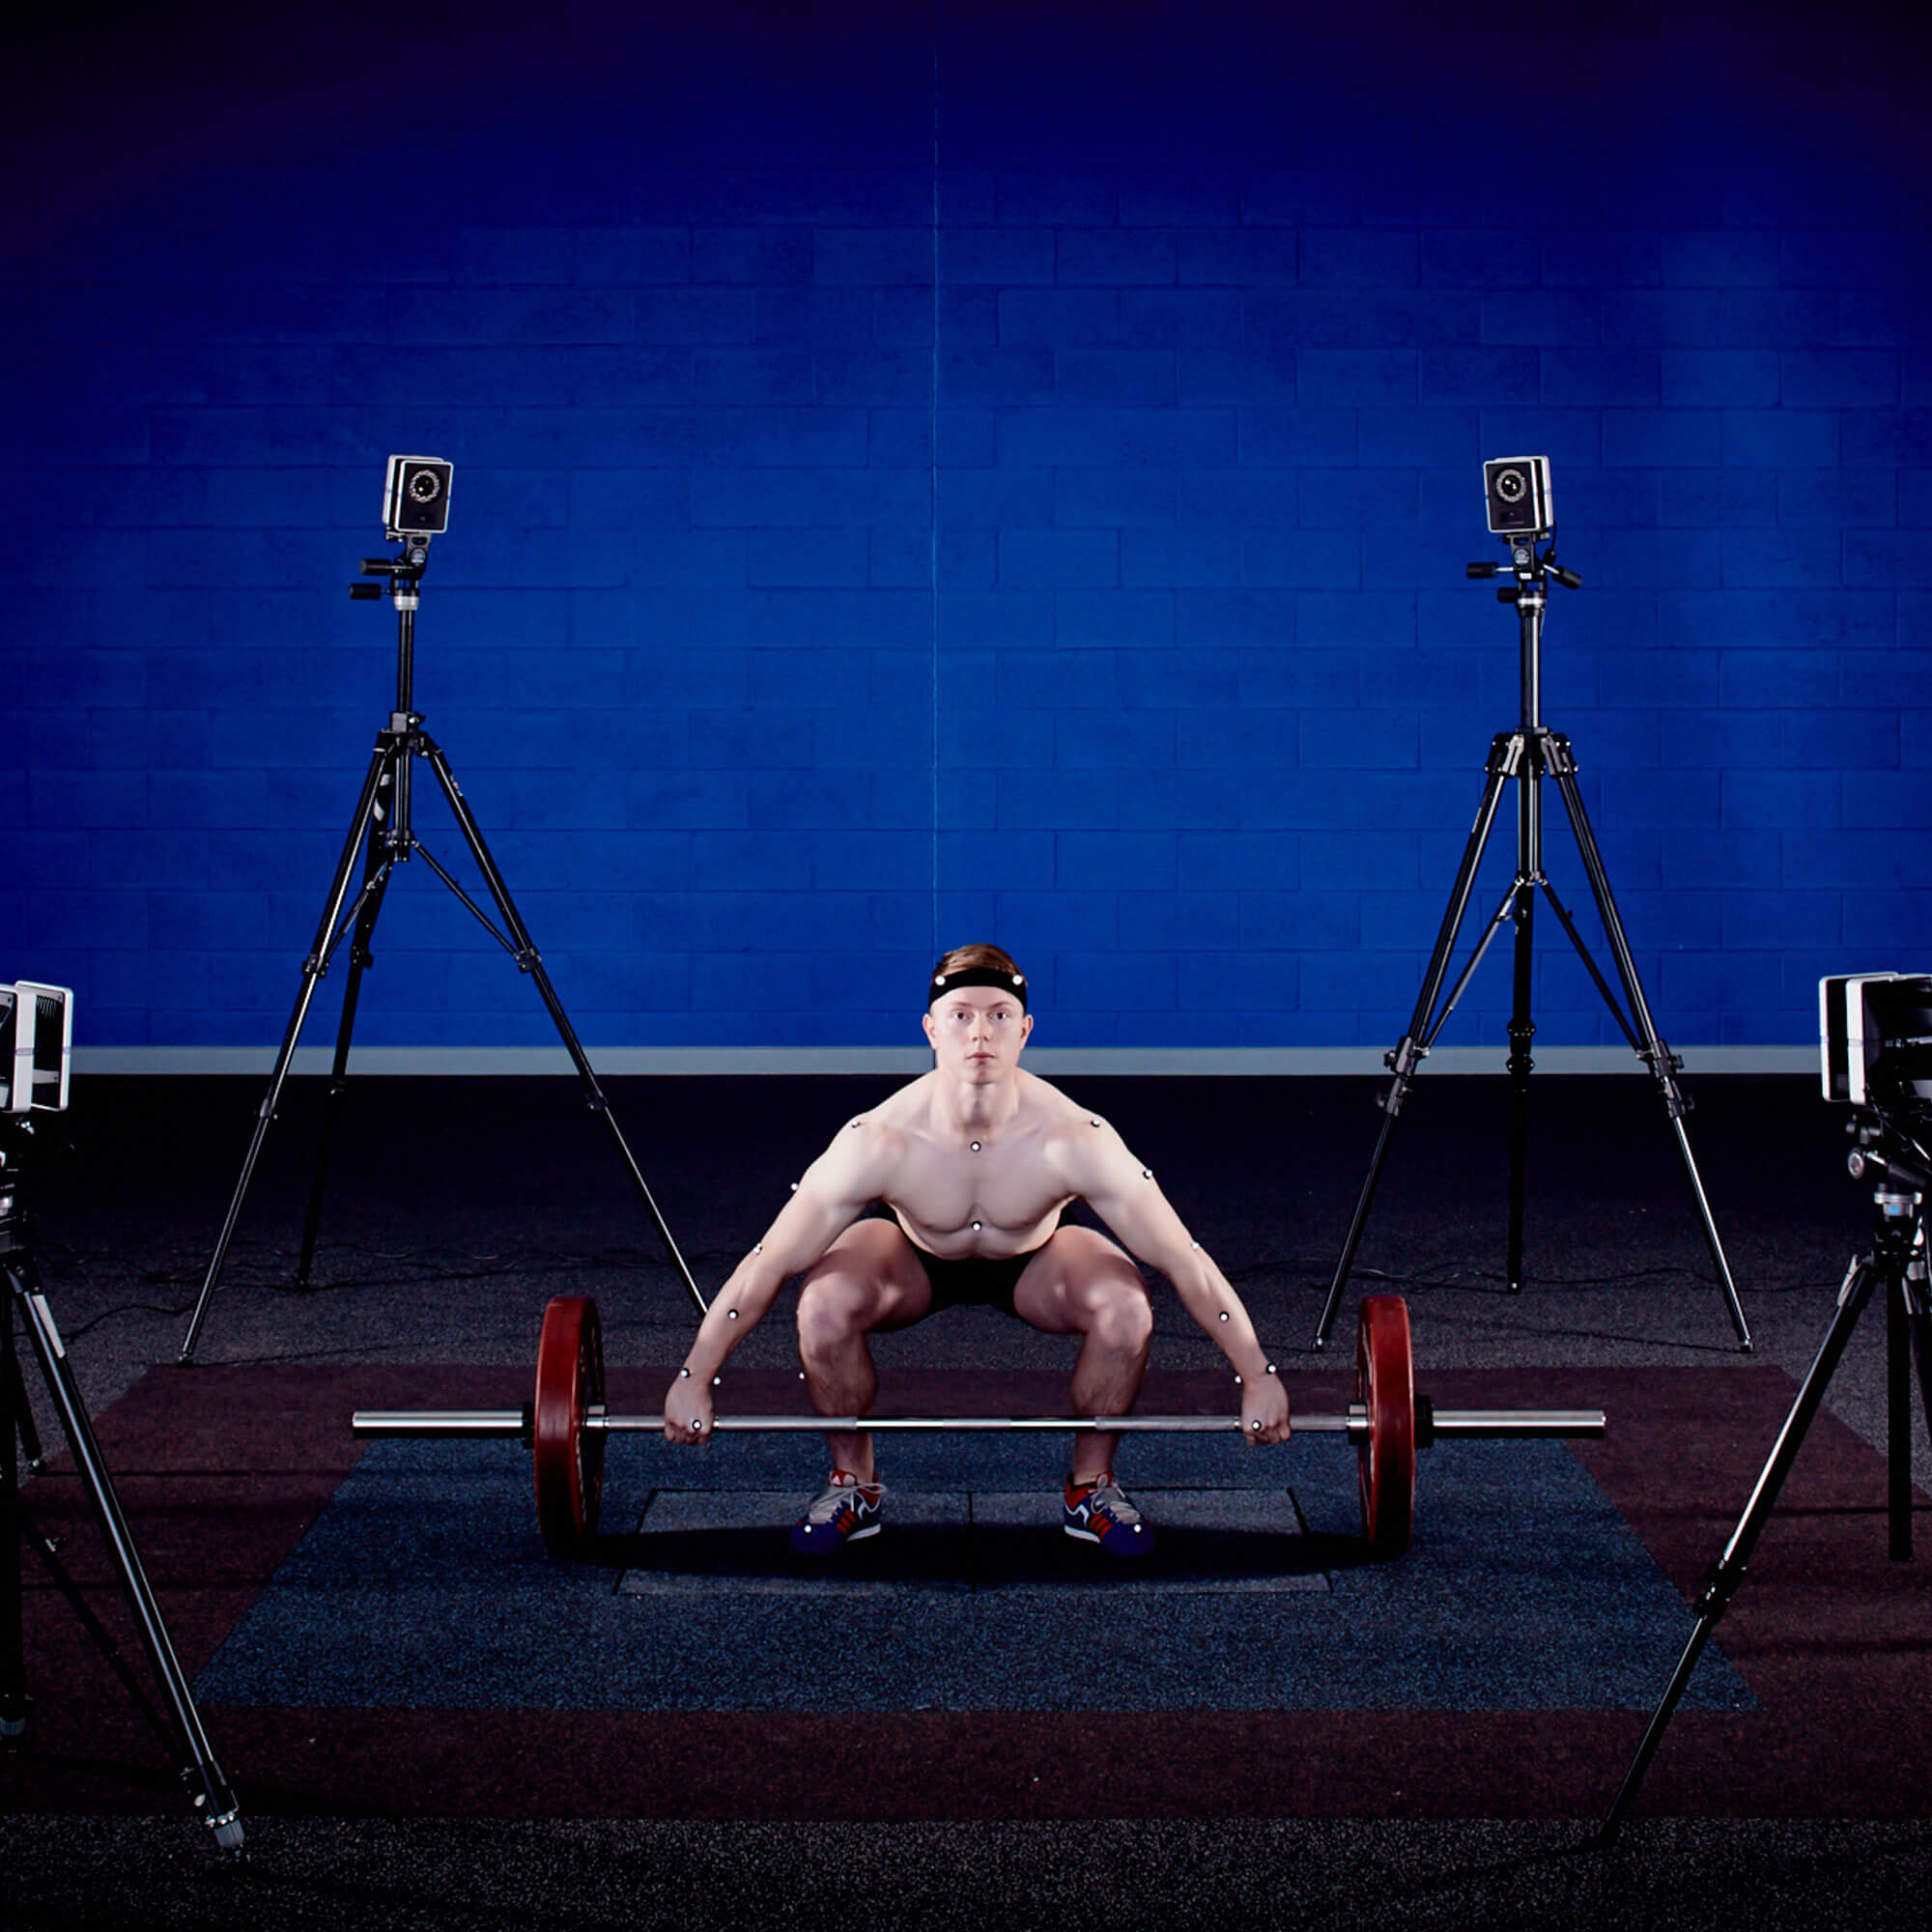 A man being monitored weightlifting